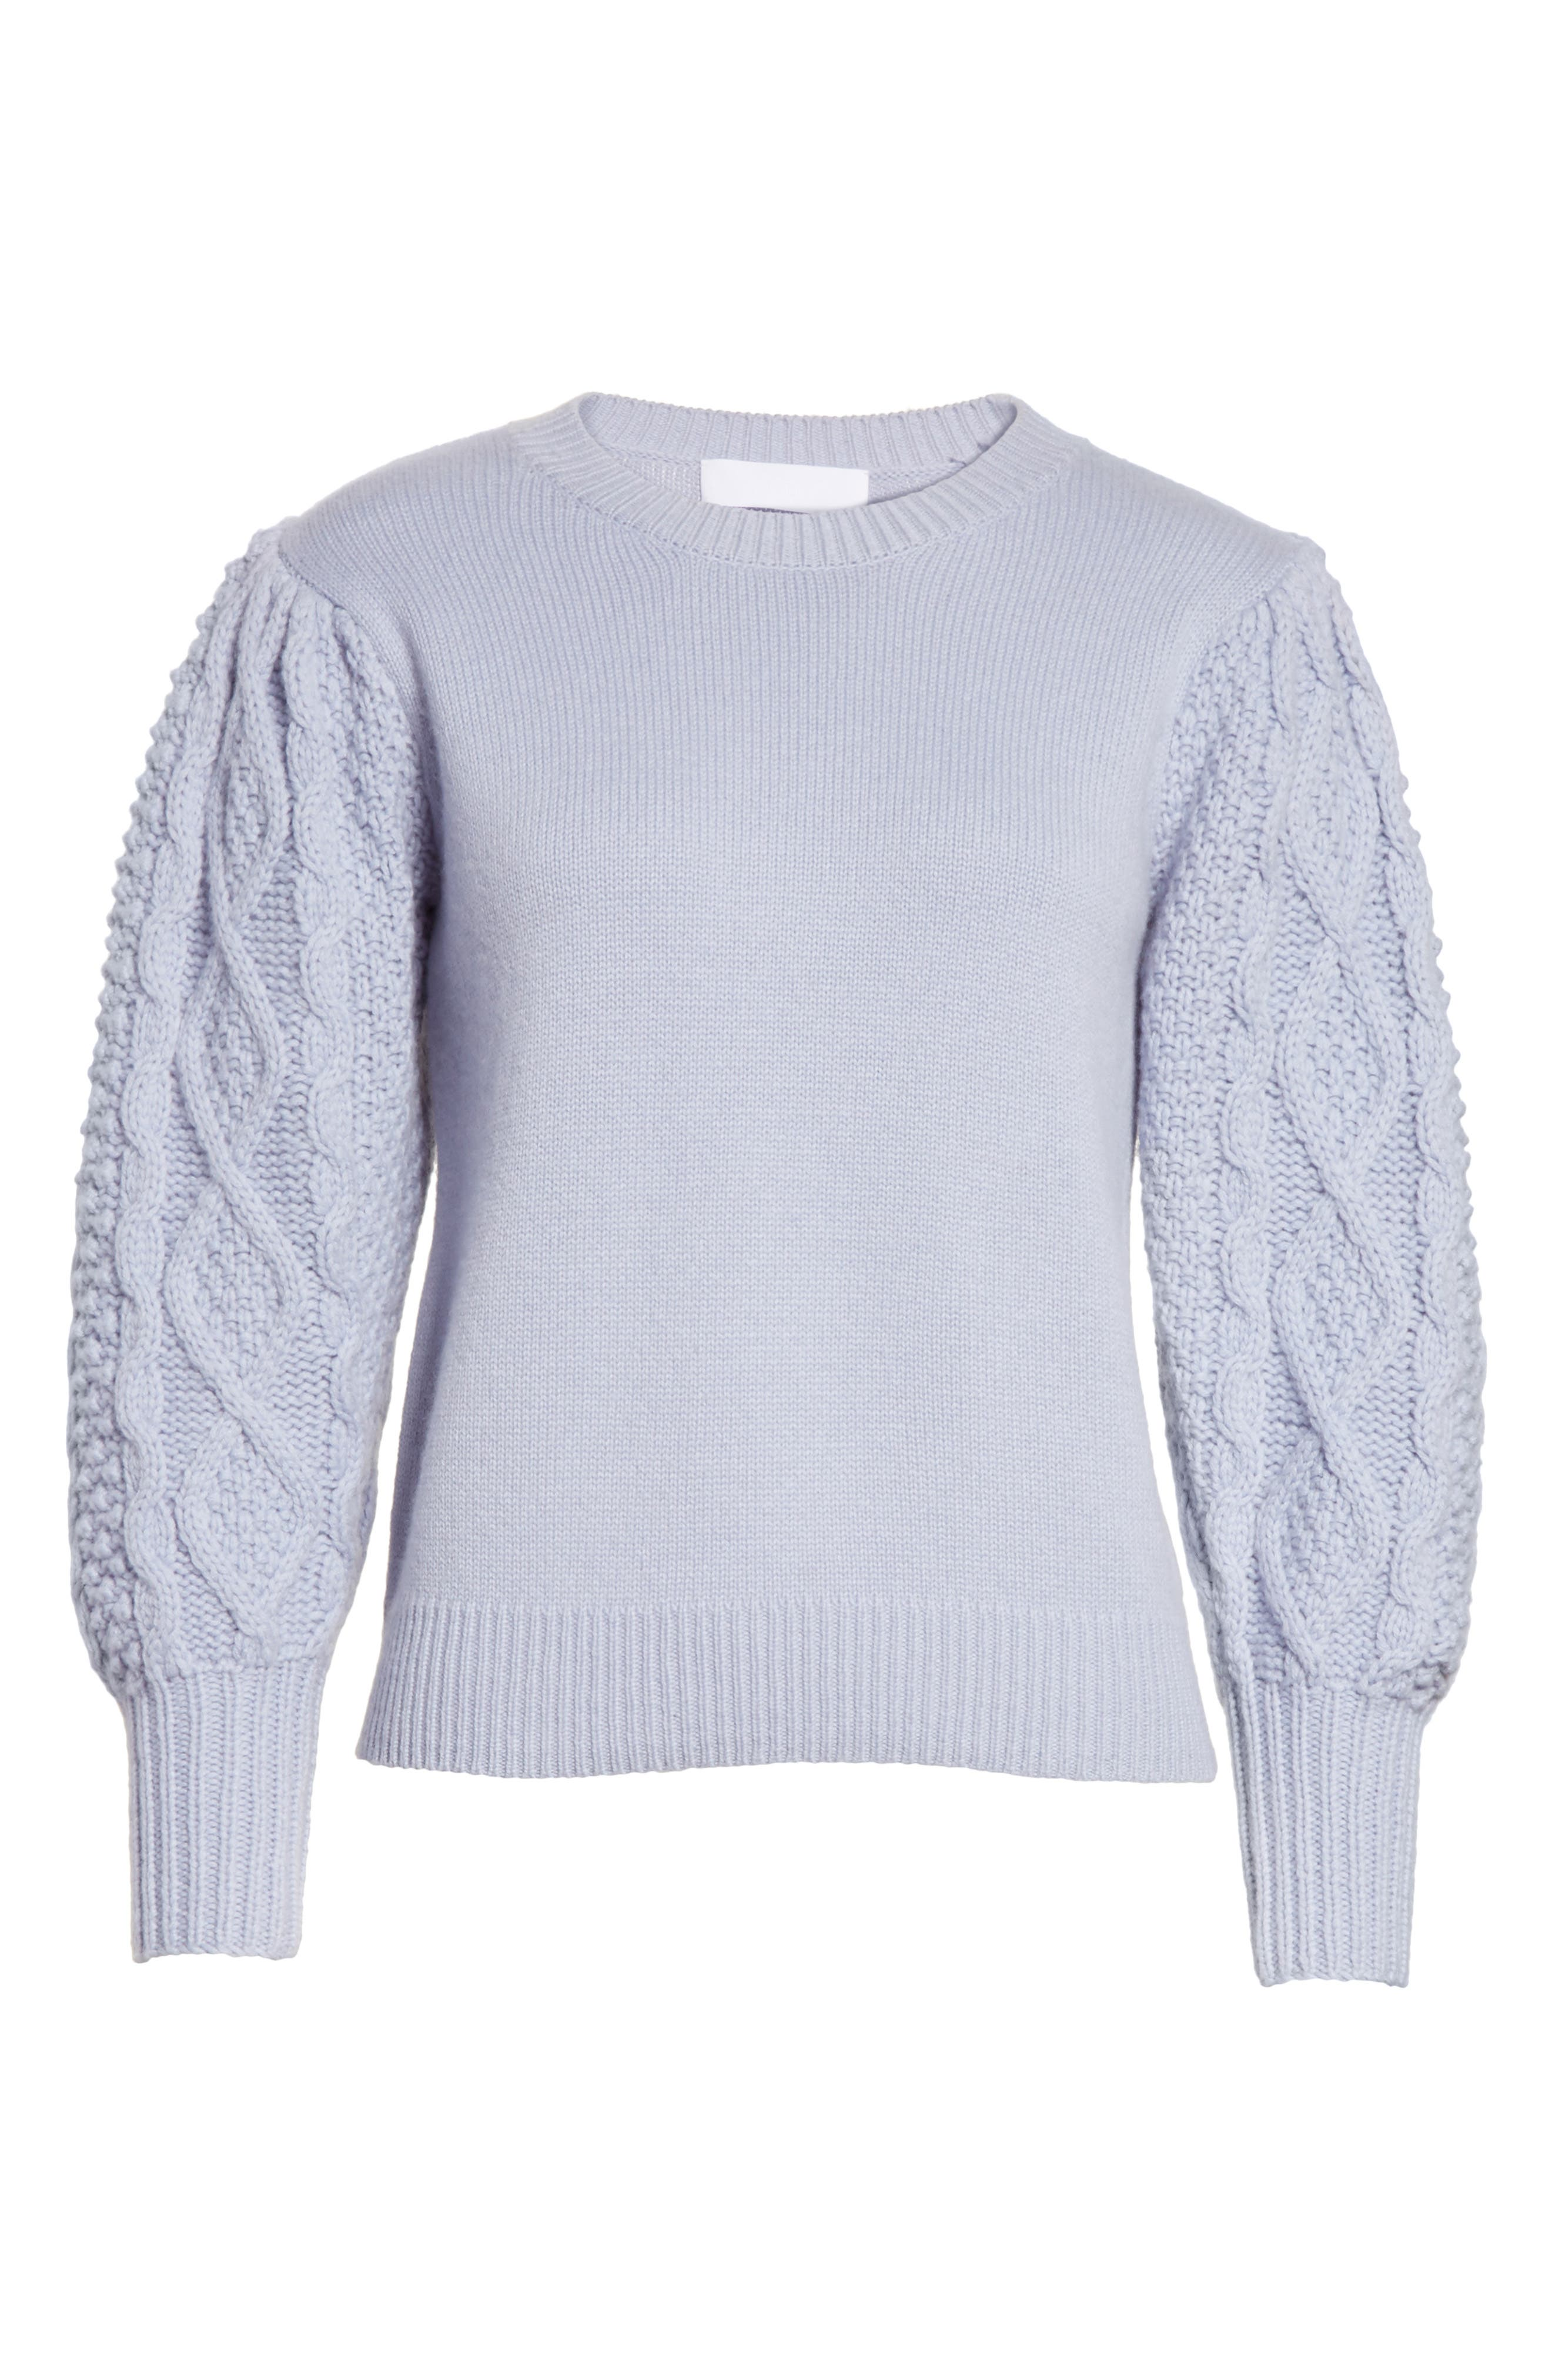 Puff Sleeve Wool & Cashmere Sweater,                             Alternate thumbnail 6, color,                             400